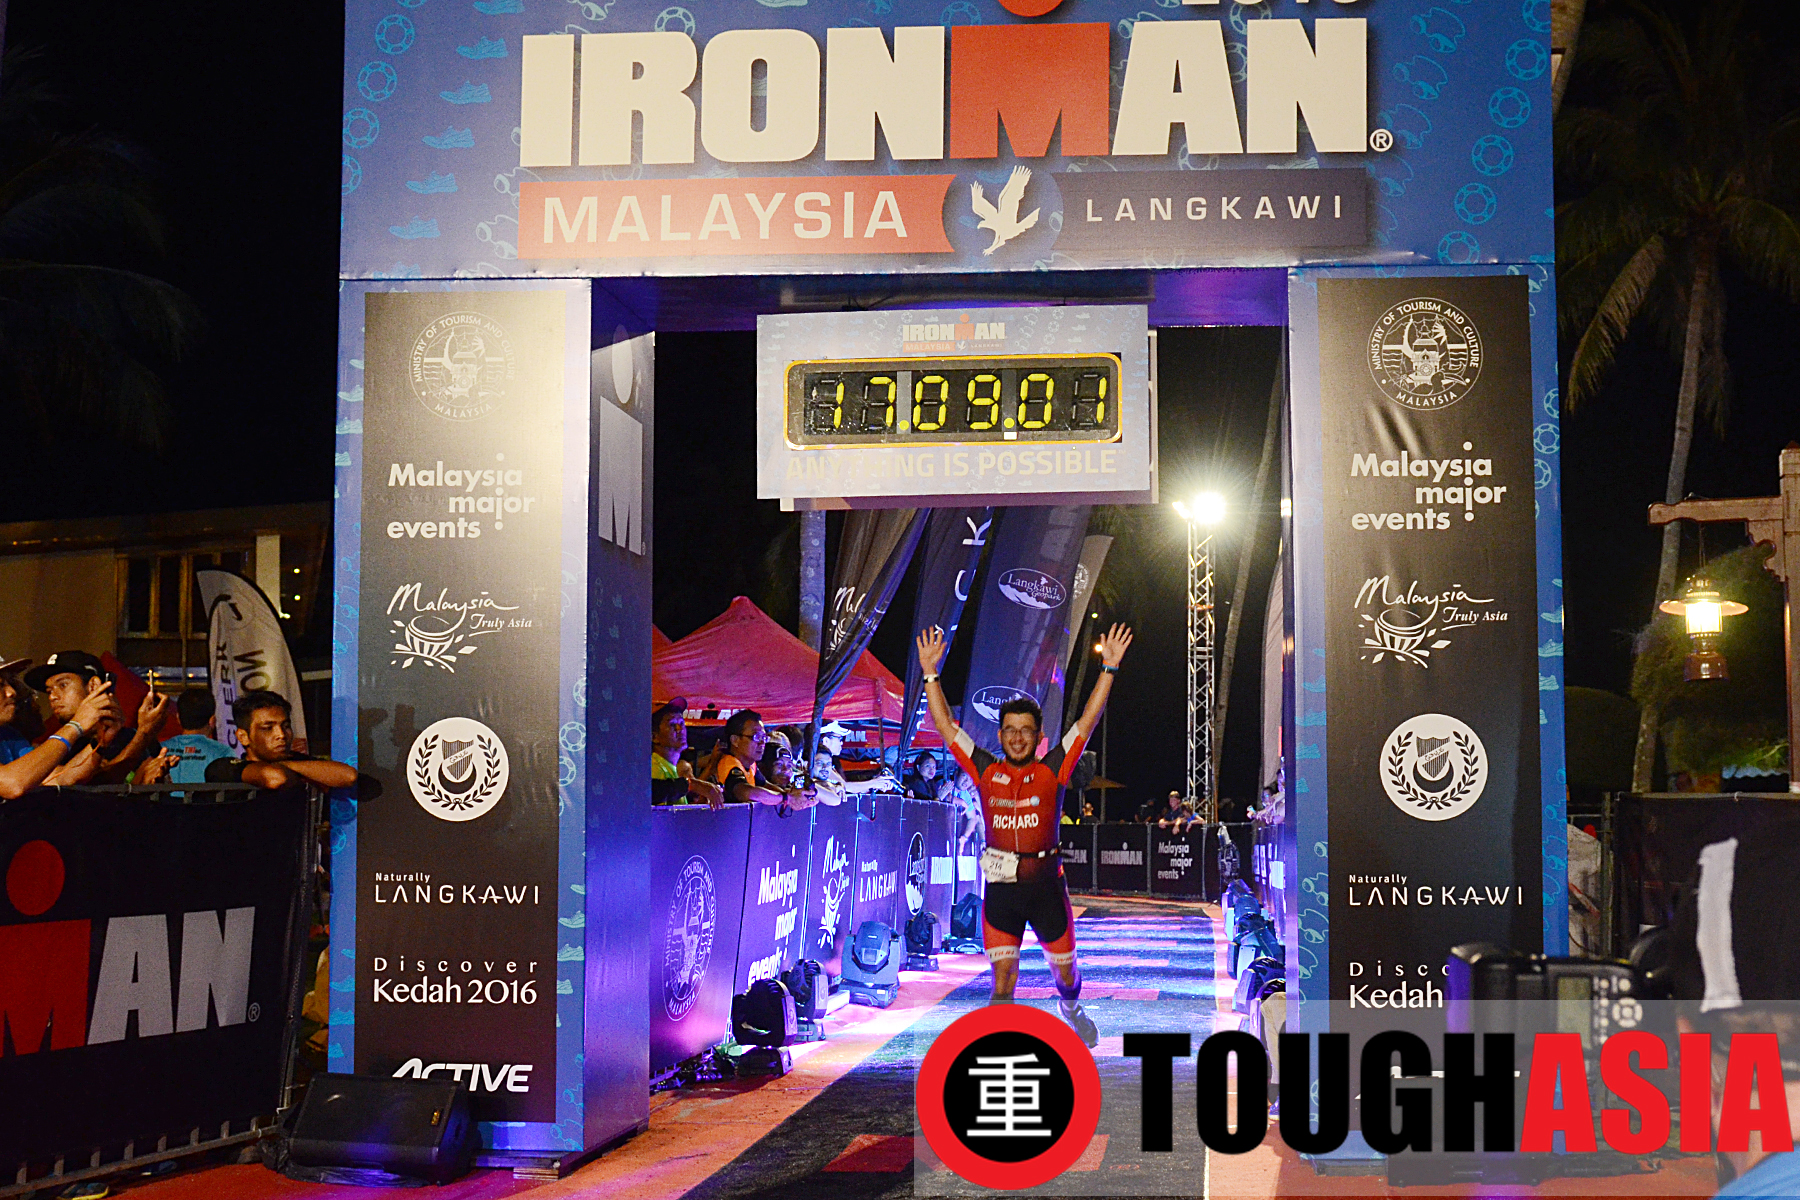 Richard Lee completes his maiden Ironman Malaysia in Langkawi.